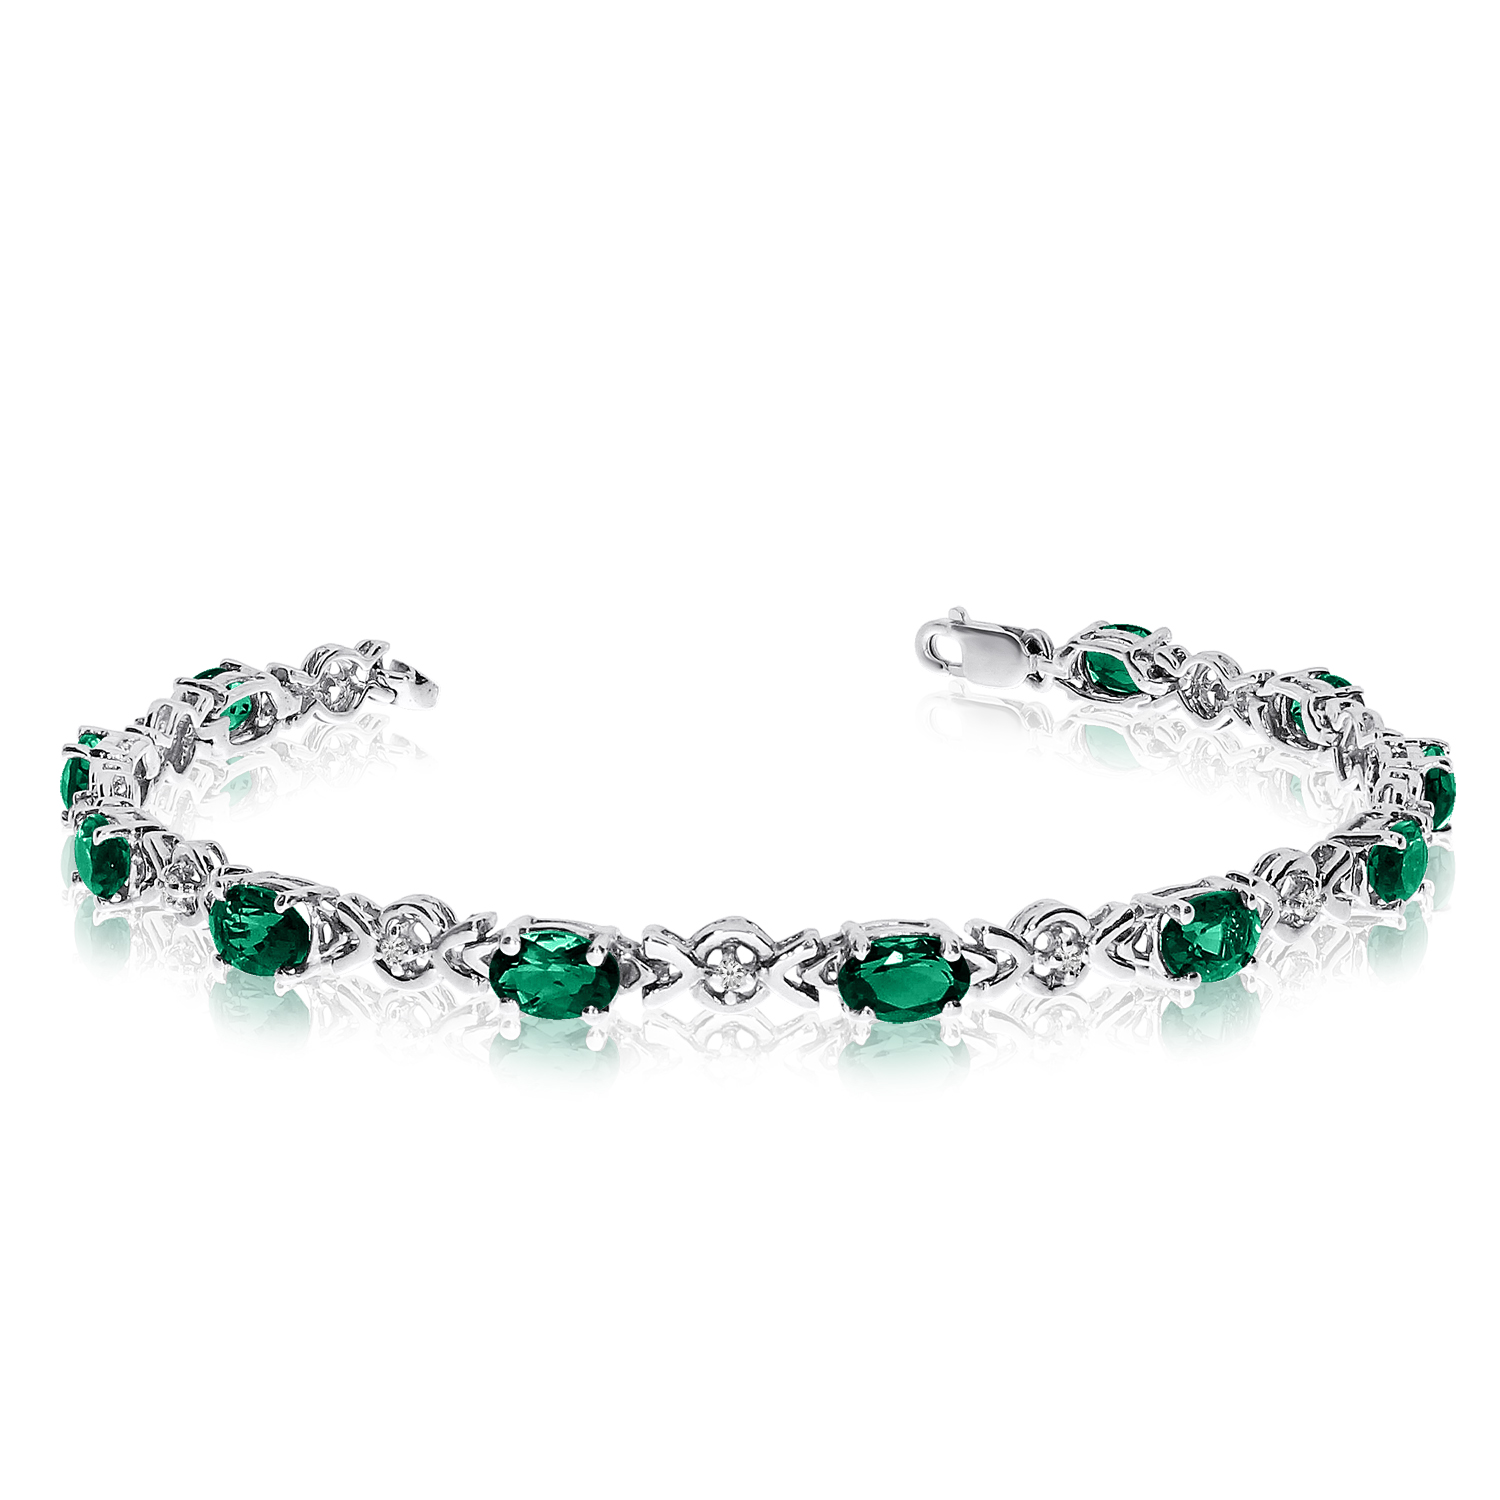 Direct-Jewelry 14K White Gold Oval Emerald and Diamond Bracelet